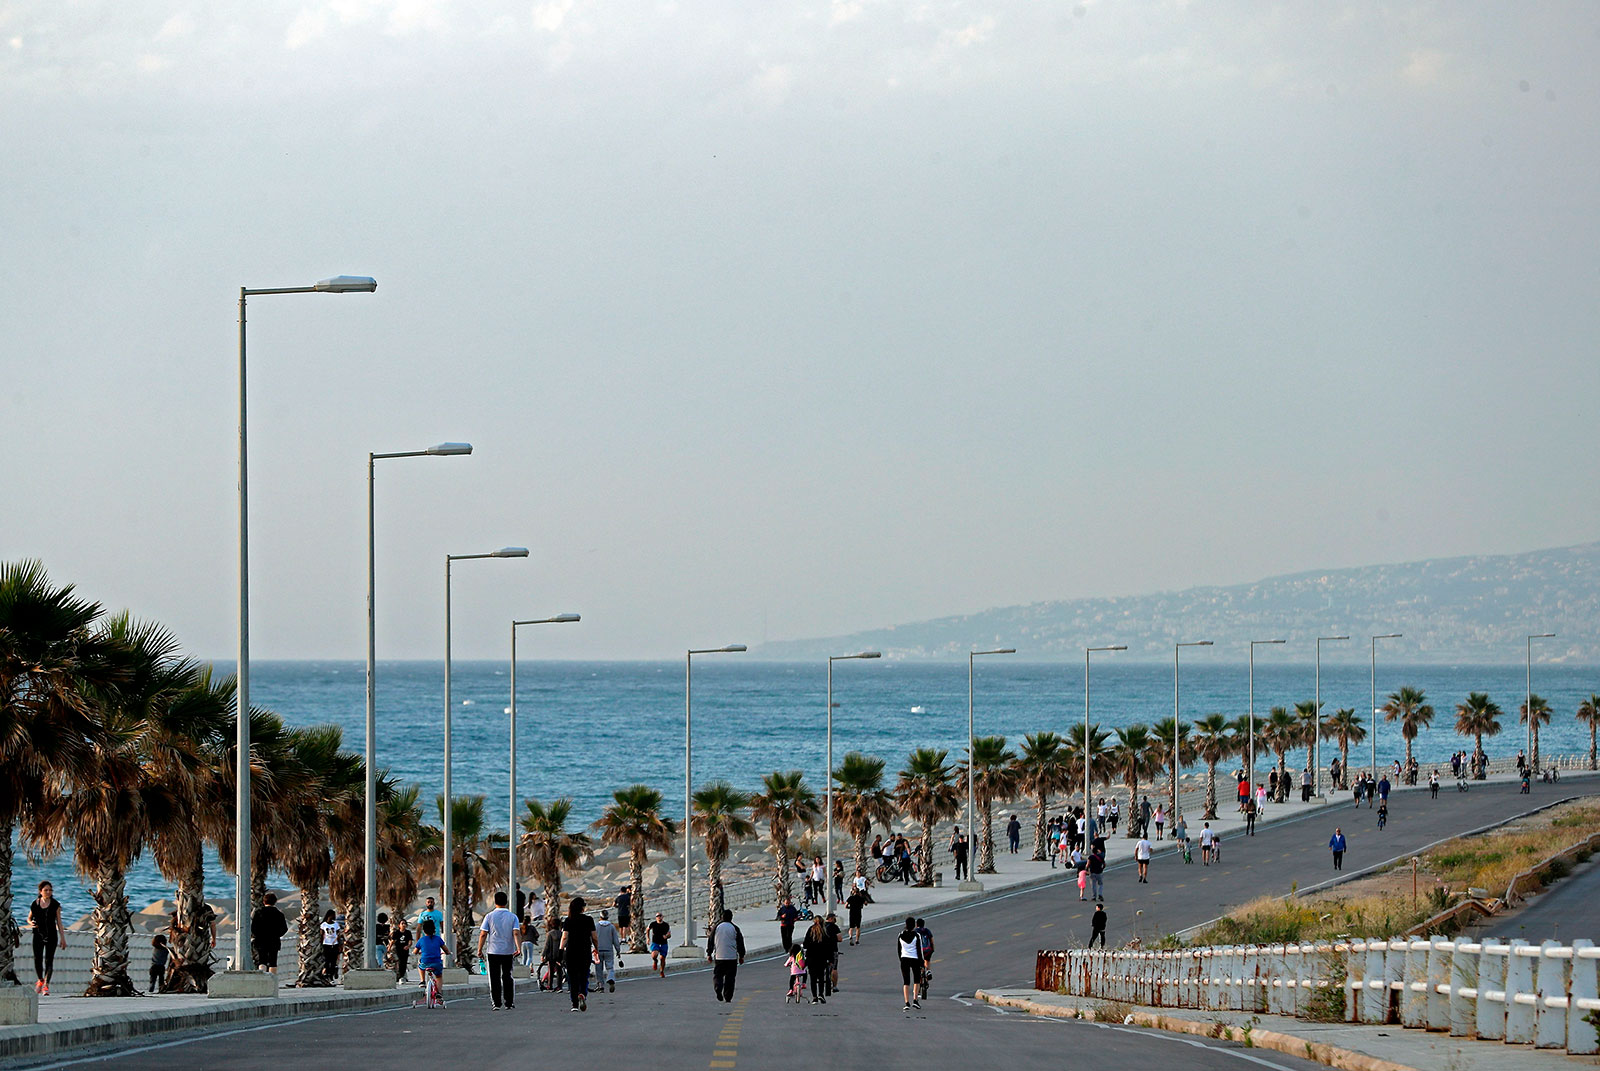 Lebanese people exercise on an empty road by the Dbayeh seaside promenade in Beirut on May 8.